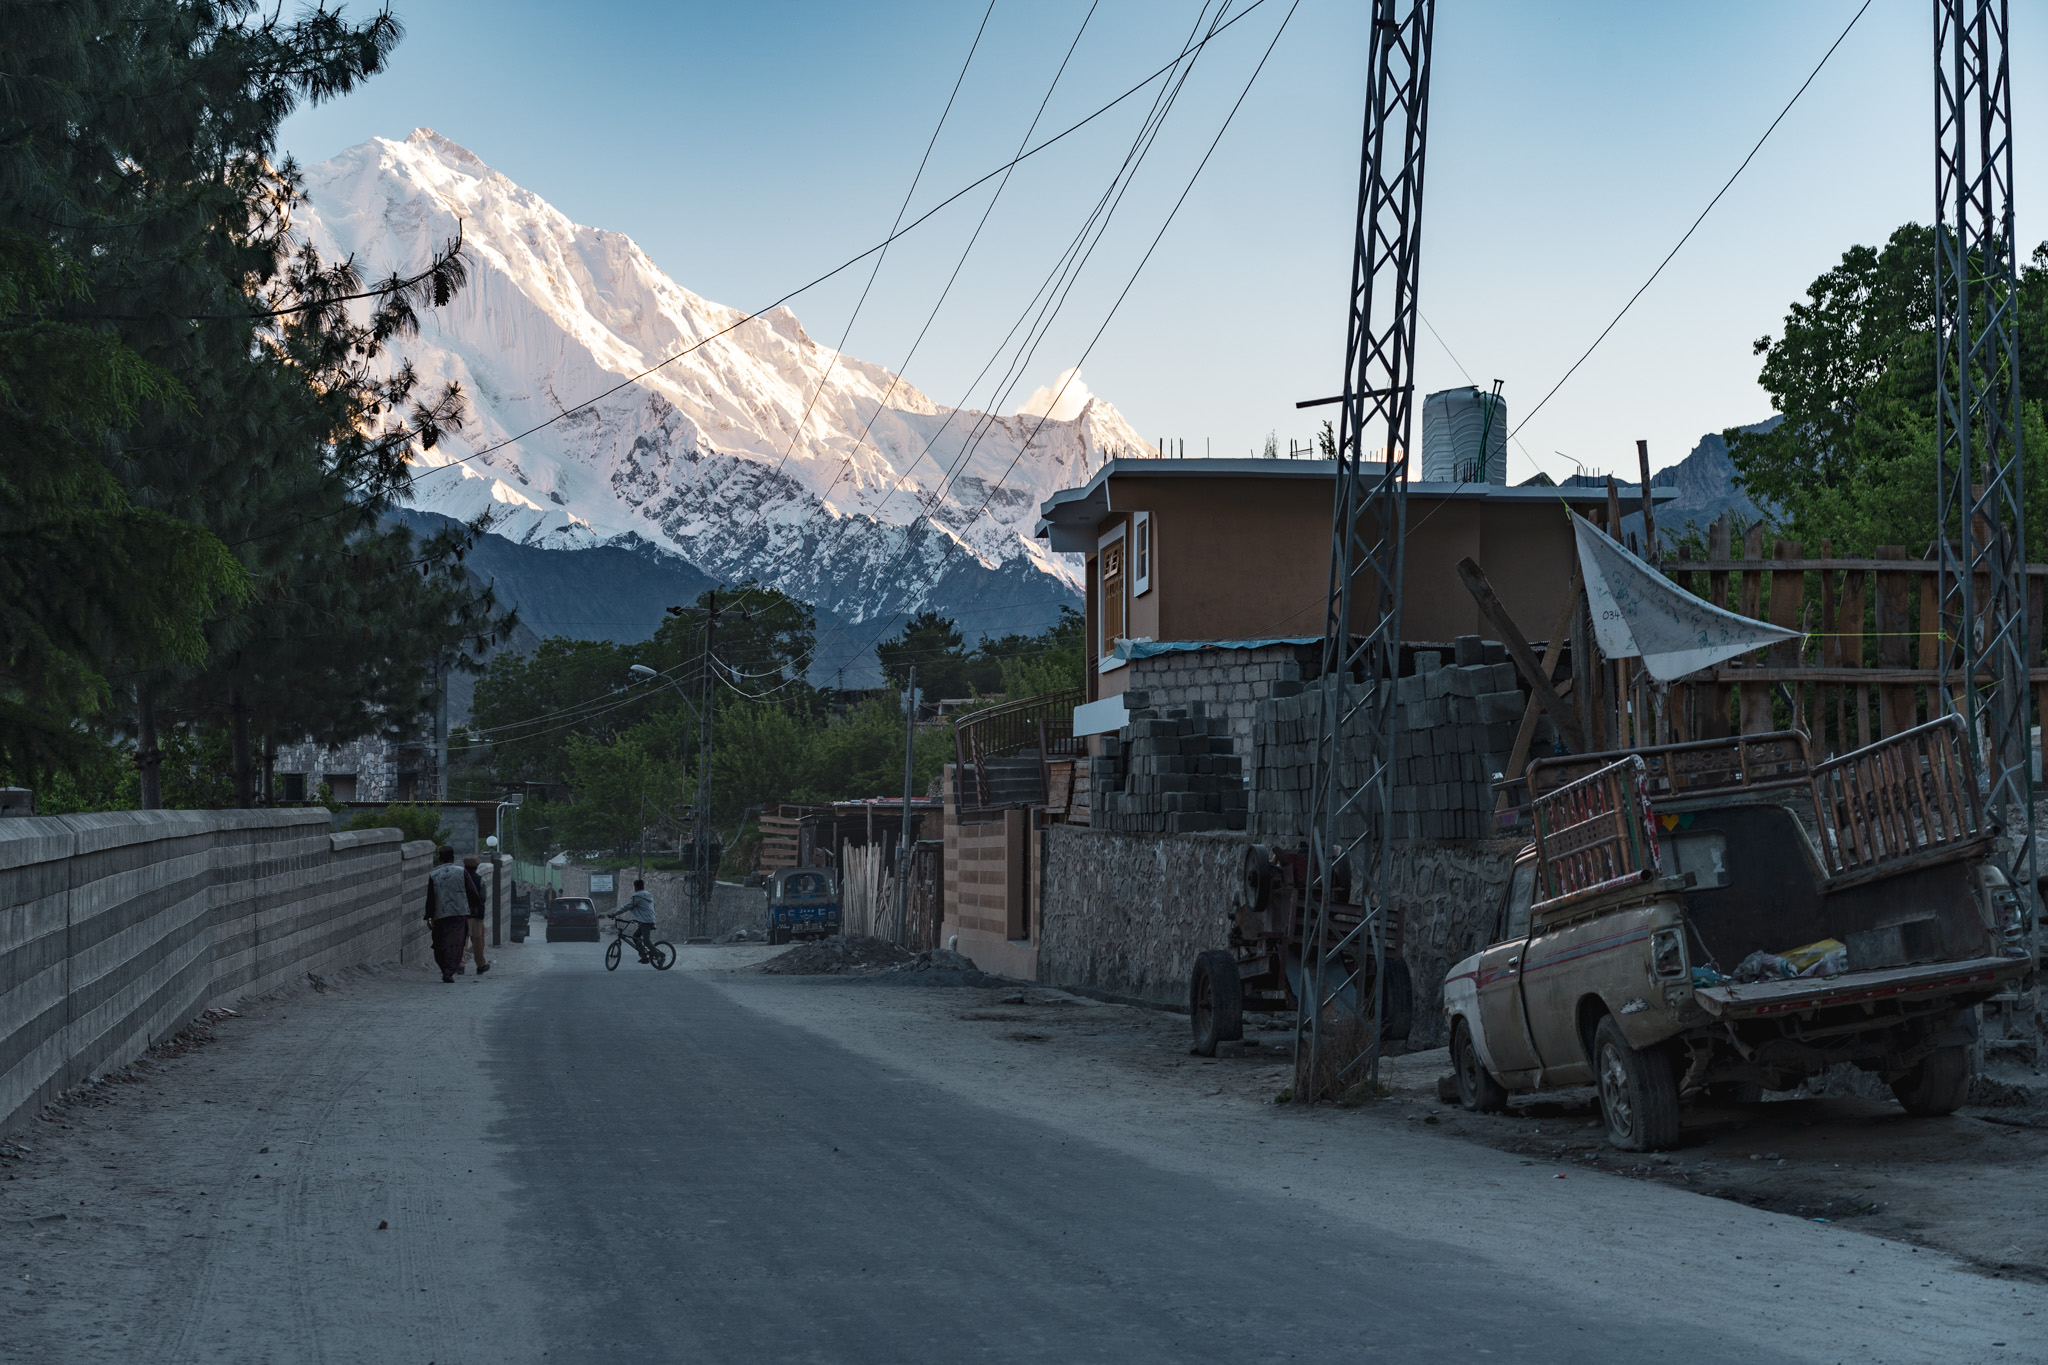 Rakaposhi towers above the streets of Karimabad